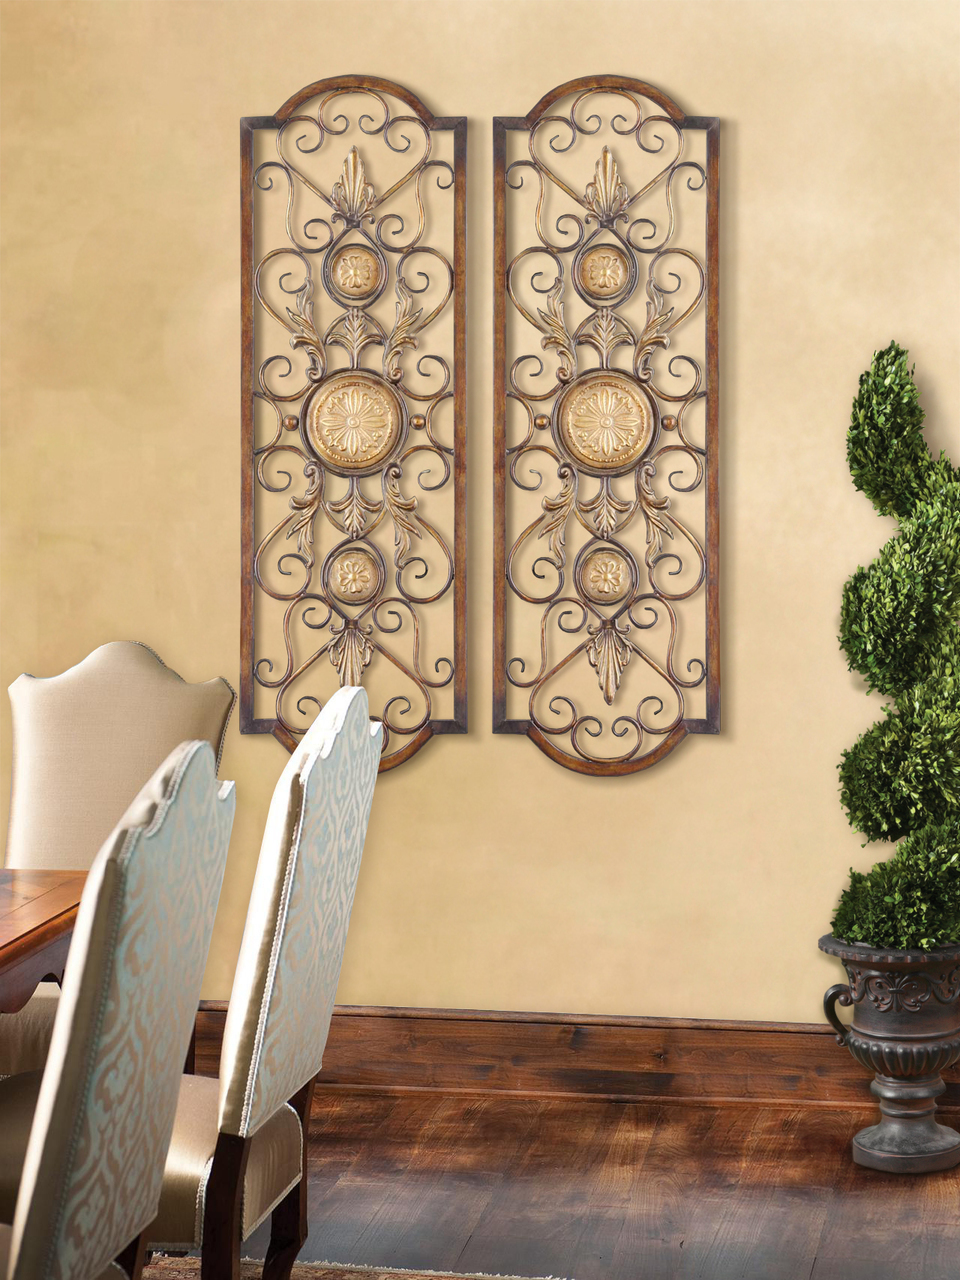 Tuscano Hand Forged & Hand Embossed Metal Wall Grille - Set of 2   eBay